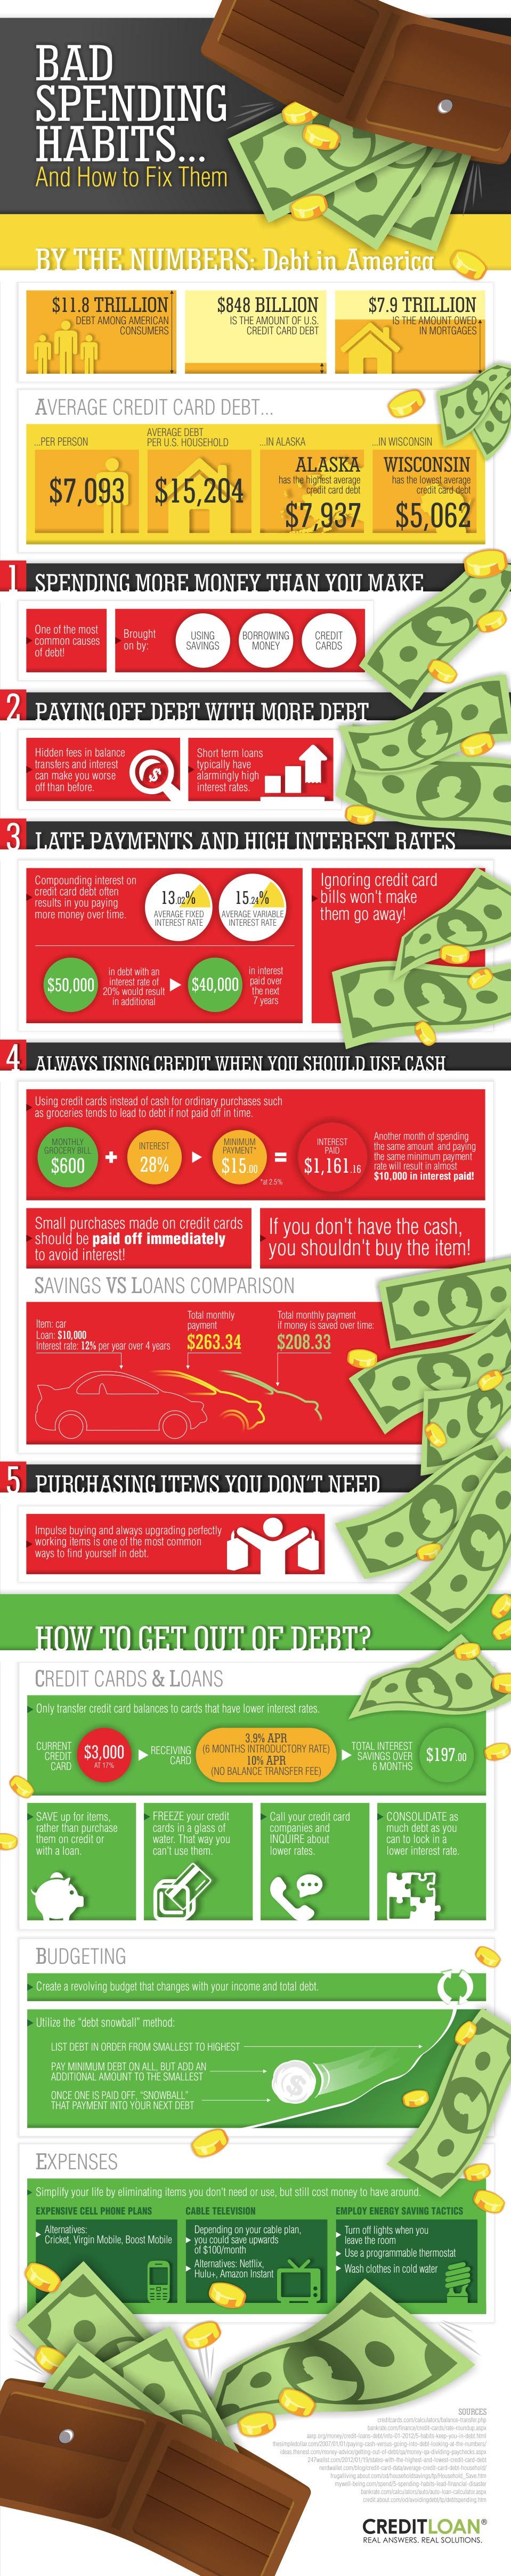 bad spending habits infographic